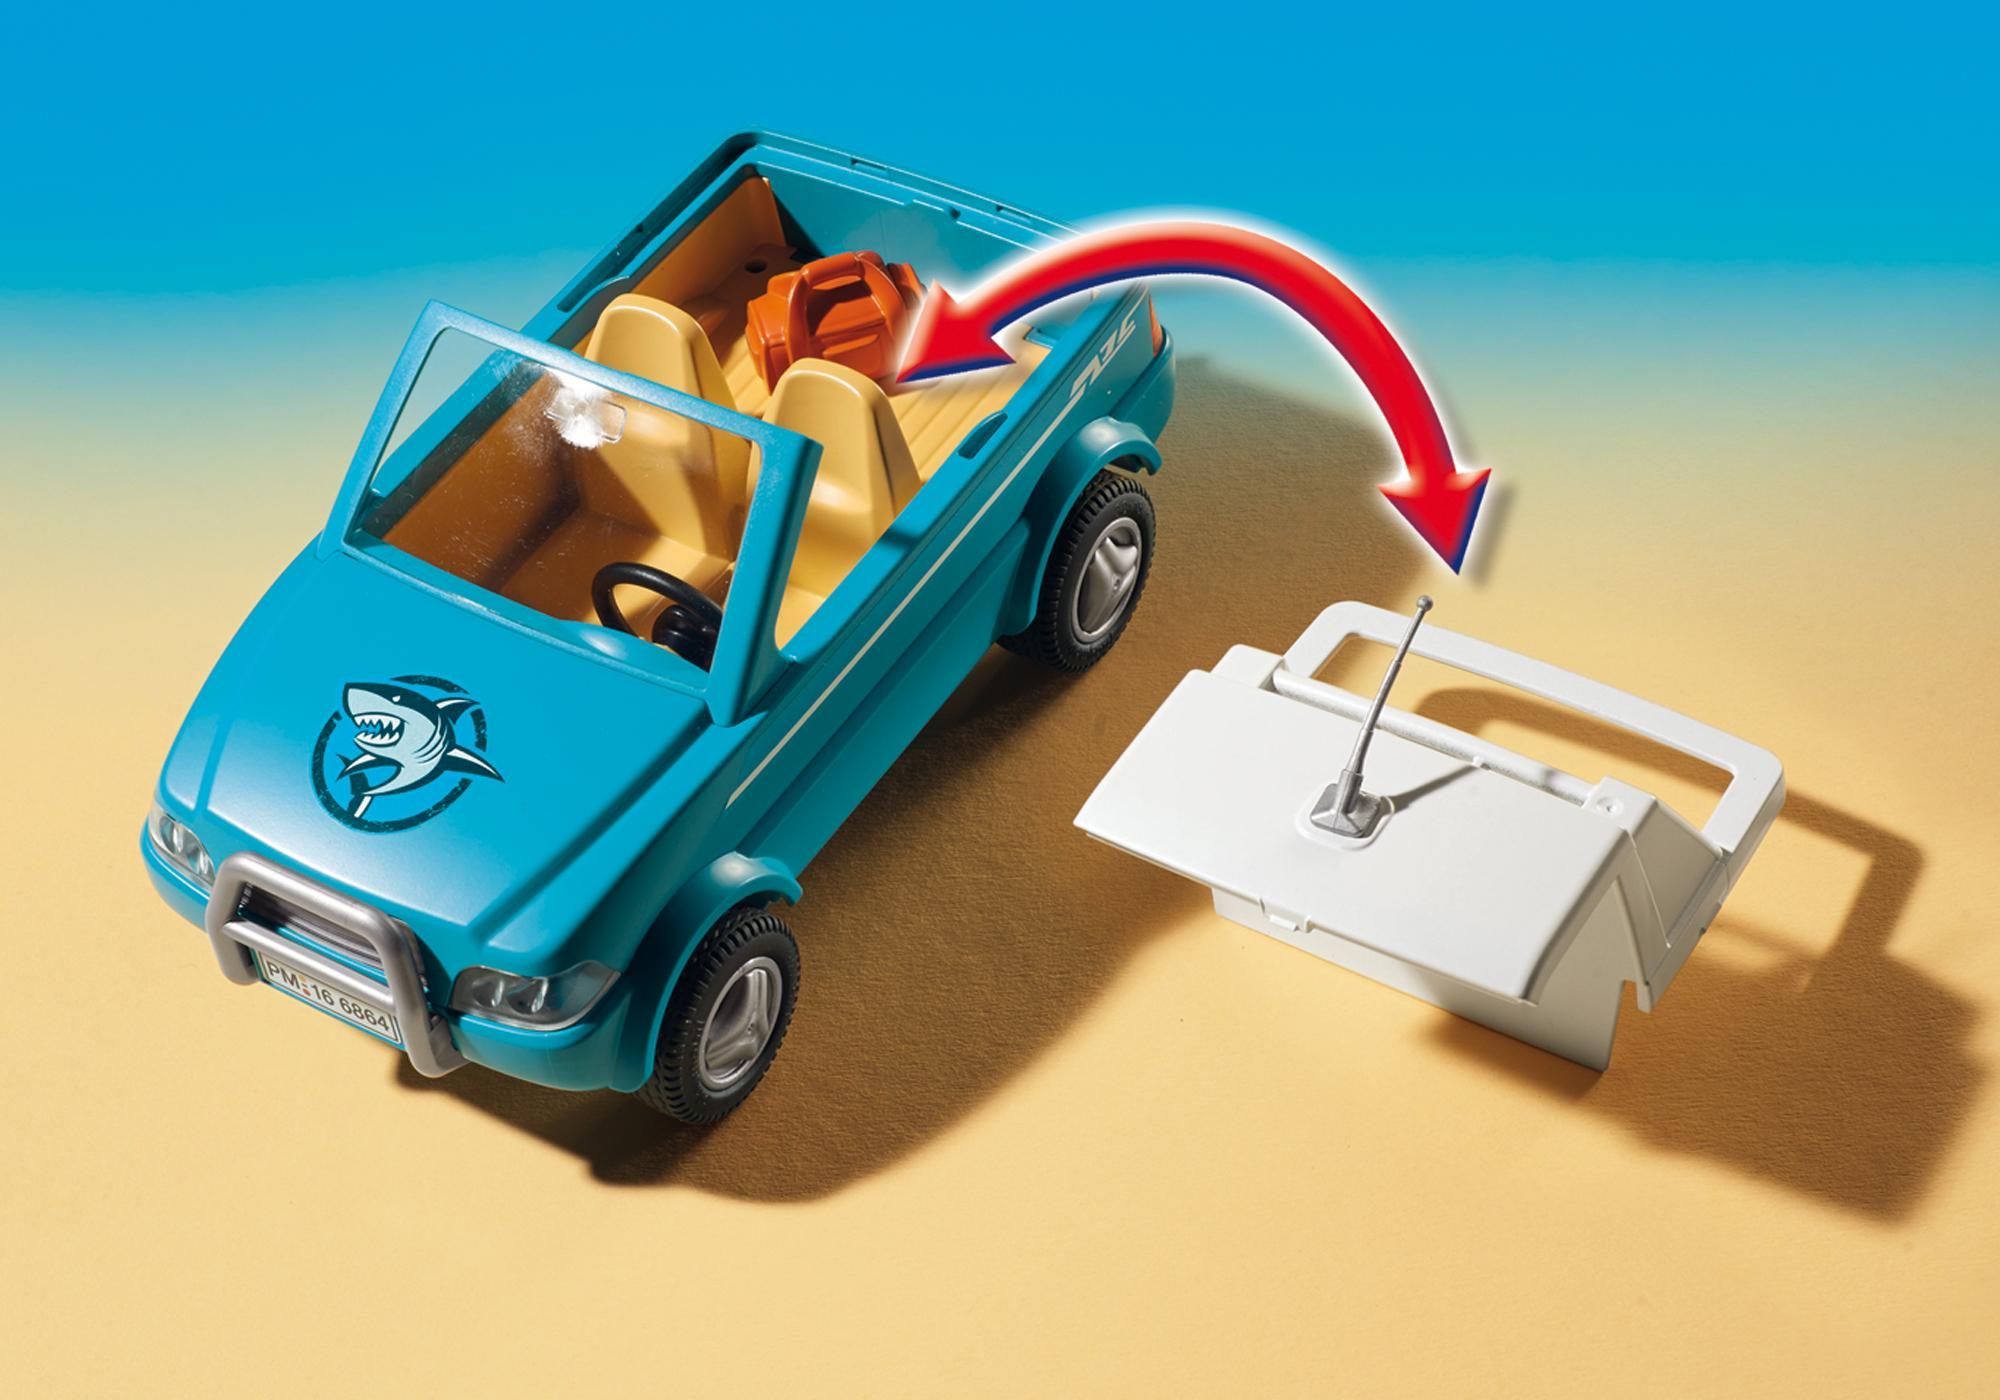 http://media.playmobil.com/i/playmobil/6864_product_extra1/Surfer Pickup with Speedboat